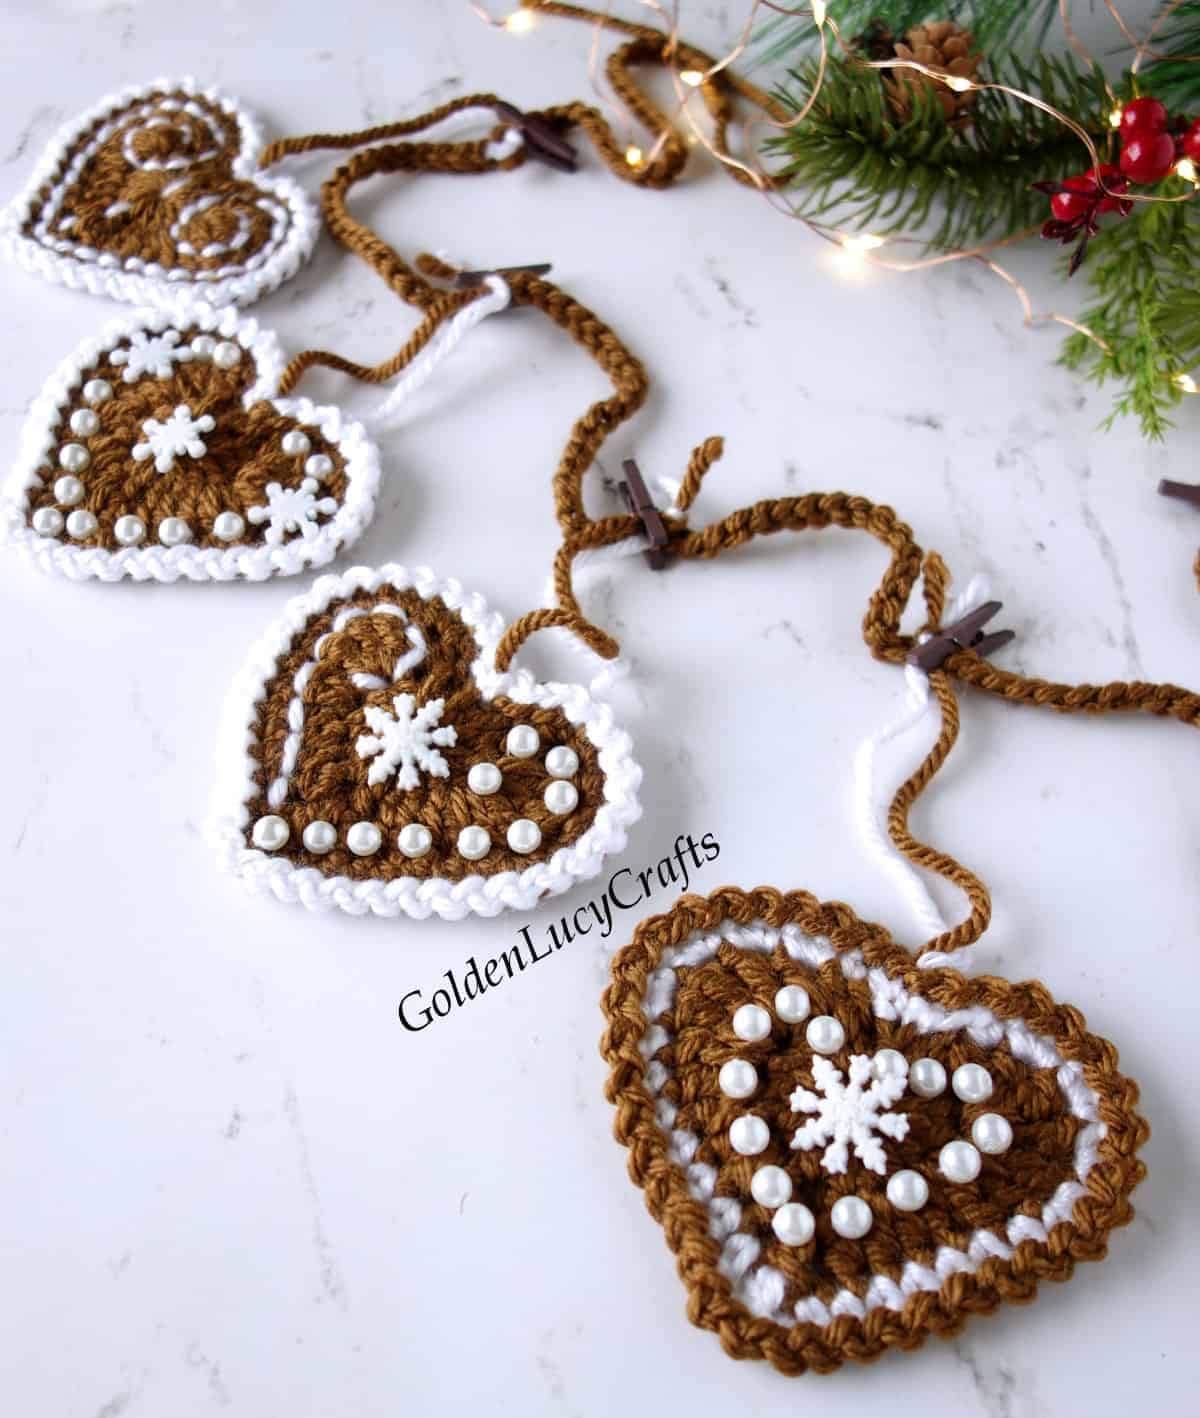 Crochet gingerbread garland close up image